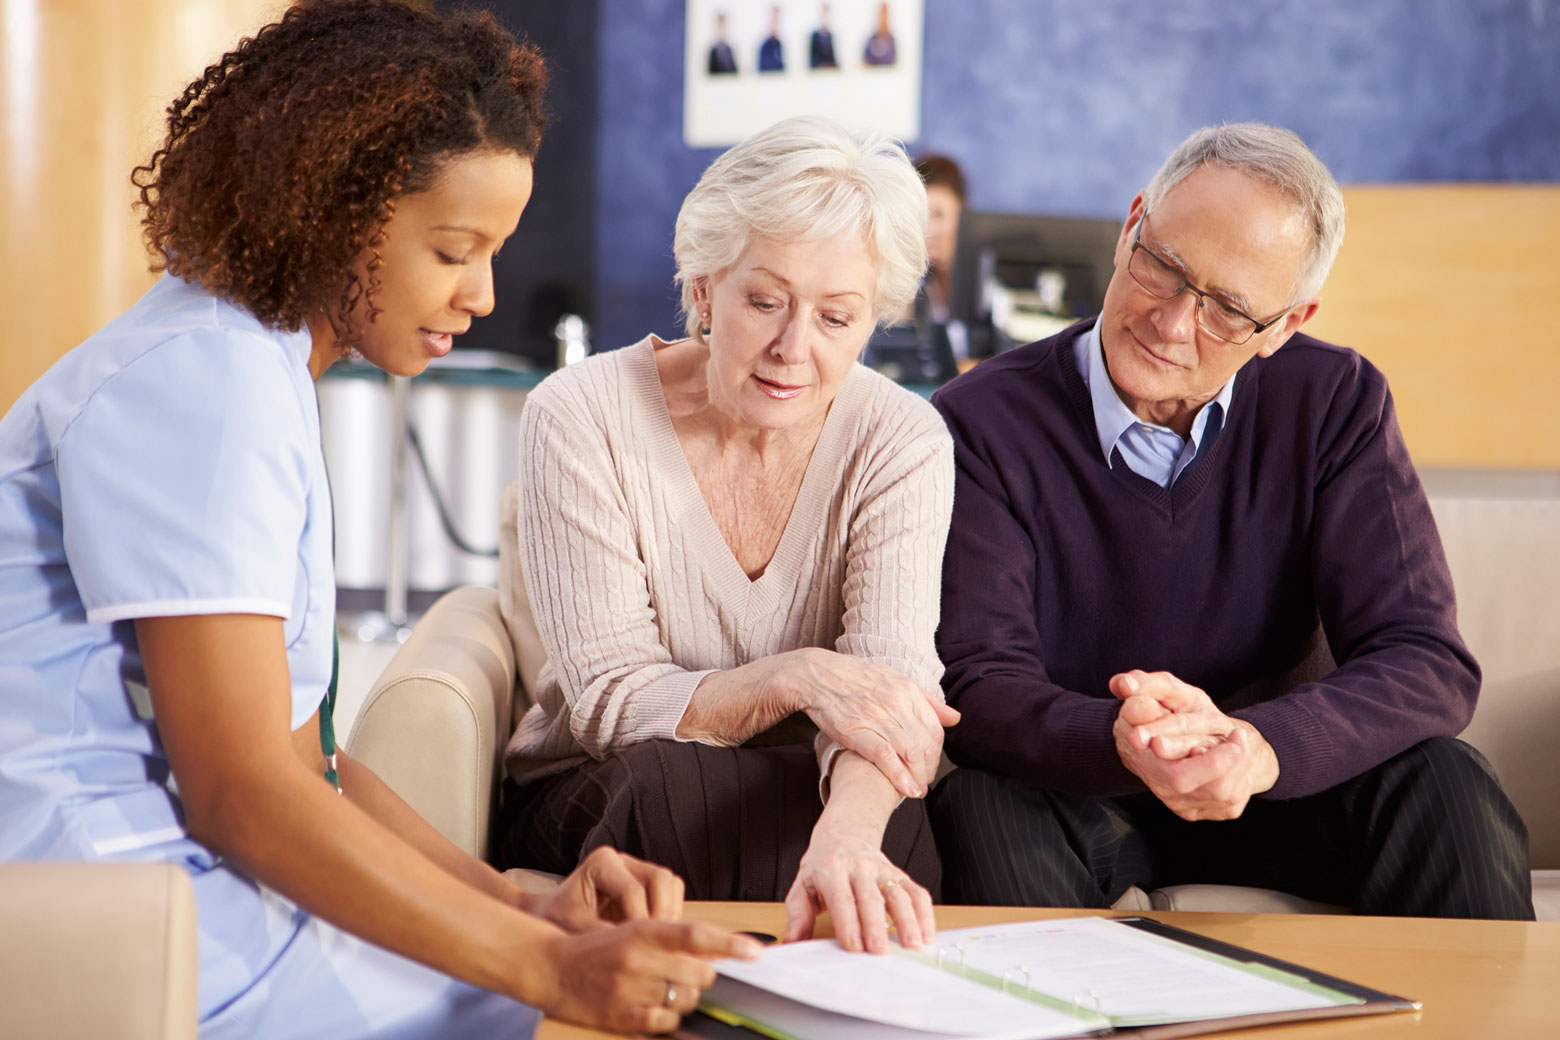 Older adults looking at life care planning documents with elder law professional